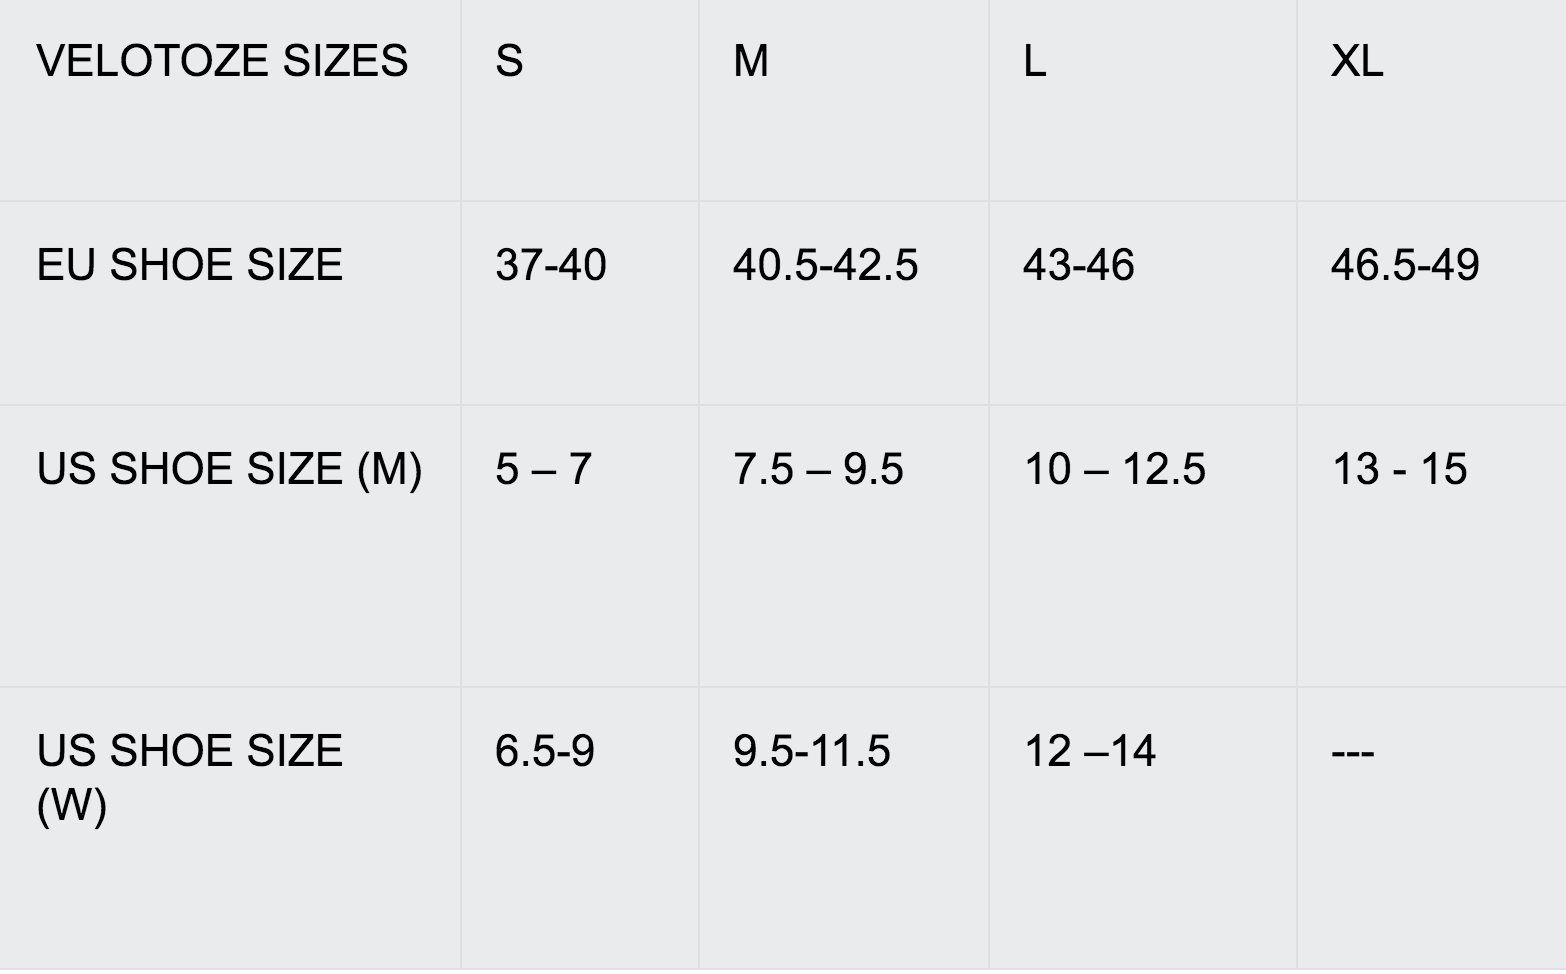 VeloToze Sizes